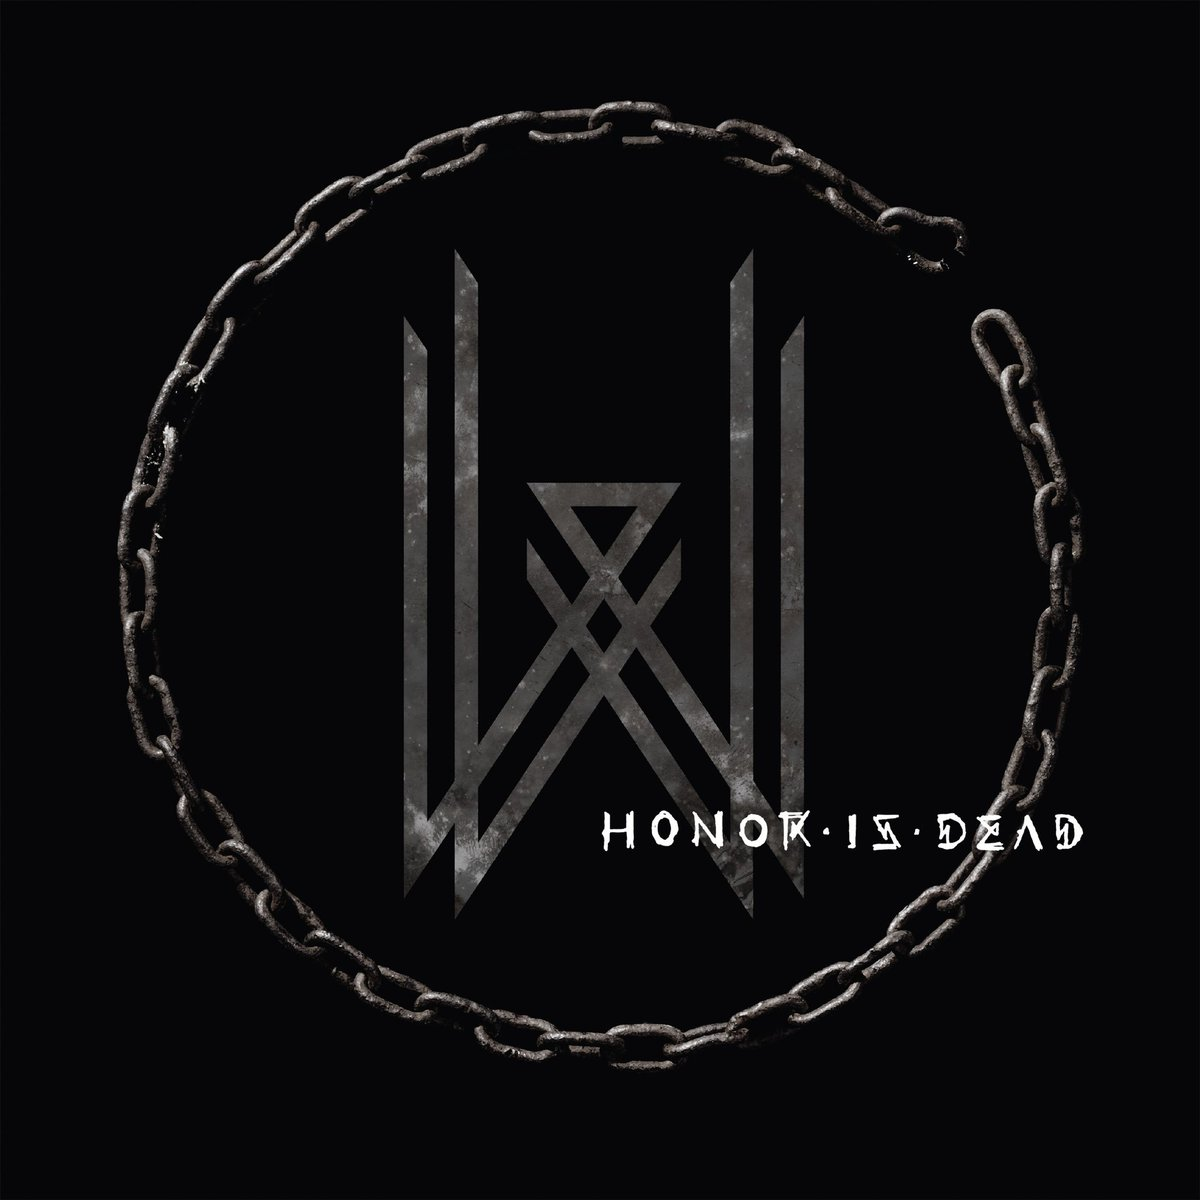 """Oct 21st 2016 @WOVENWAR released the album """"Honor Is Dead"""" #Confession #WorldOnFire #Compass #StonesThrown #Bloodletter #HeavyMetal<br>http://pic.twitter.com/h91gw0mjWd"""